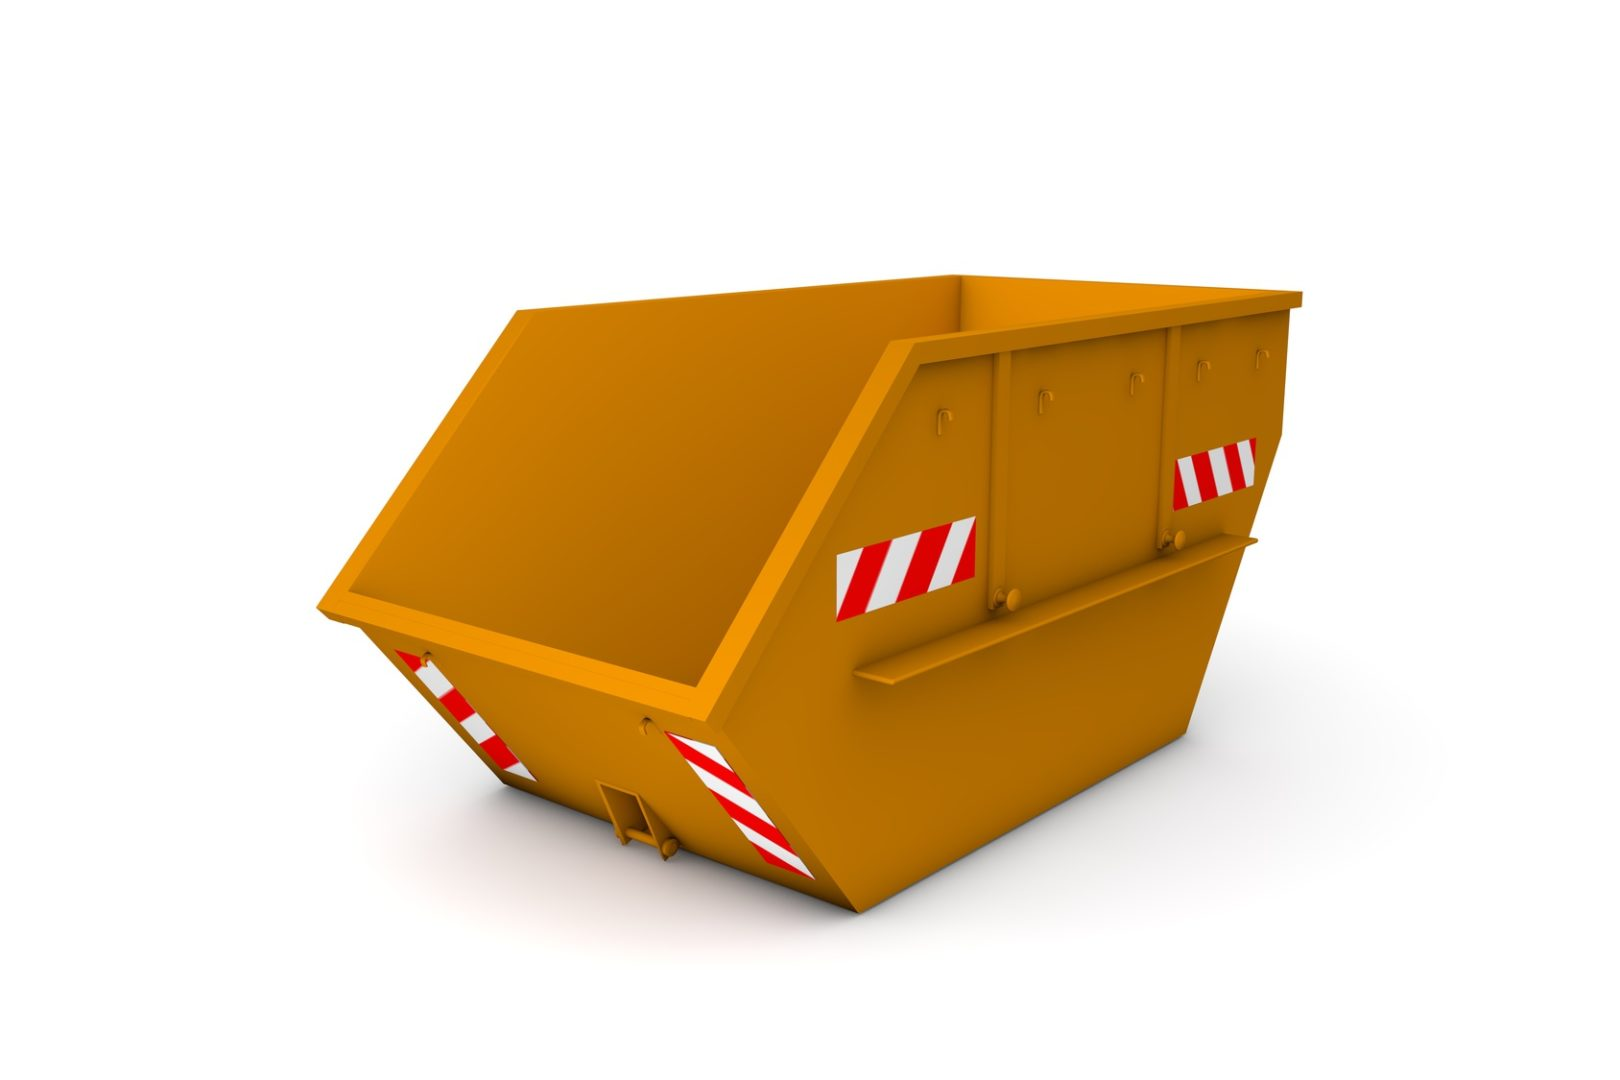 Mllcontainer